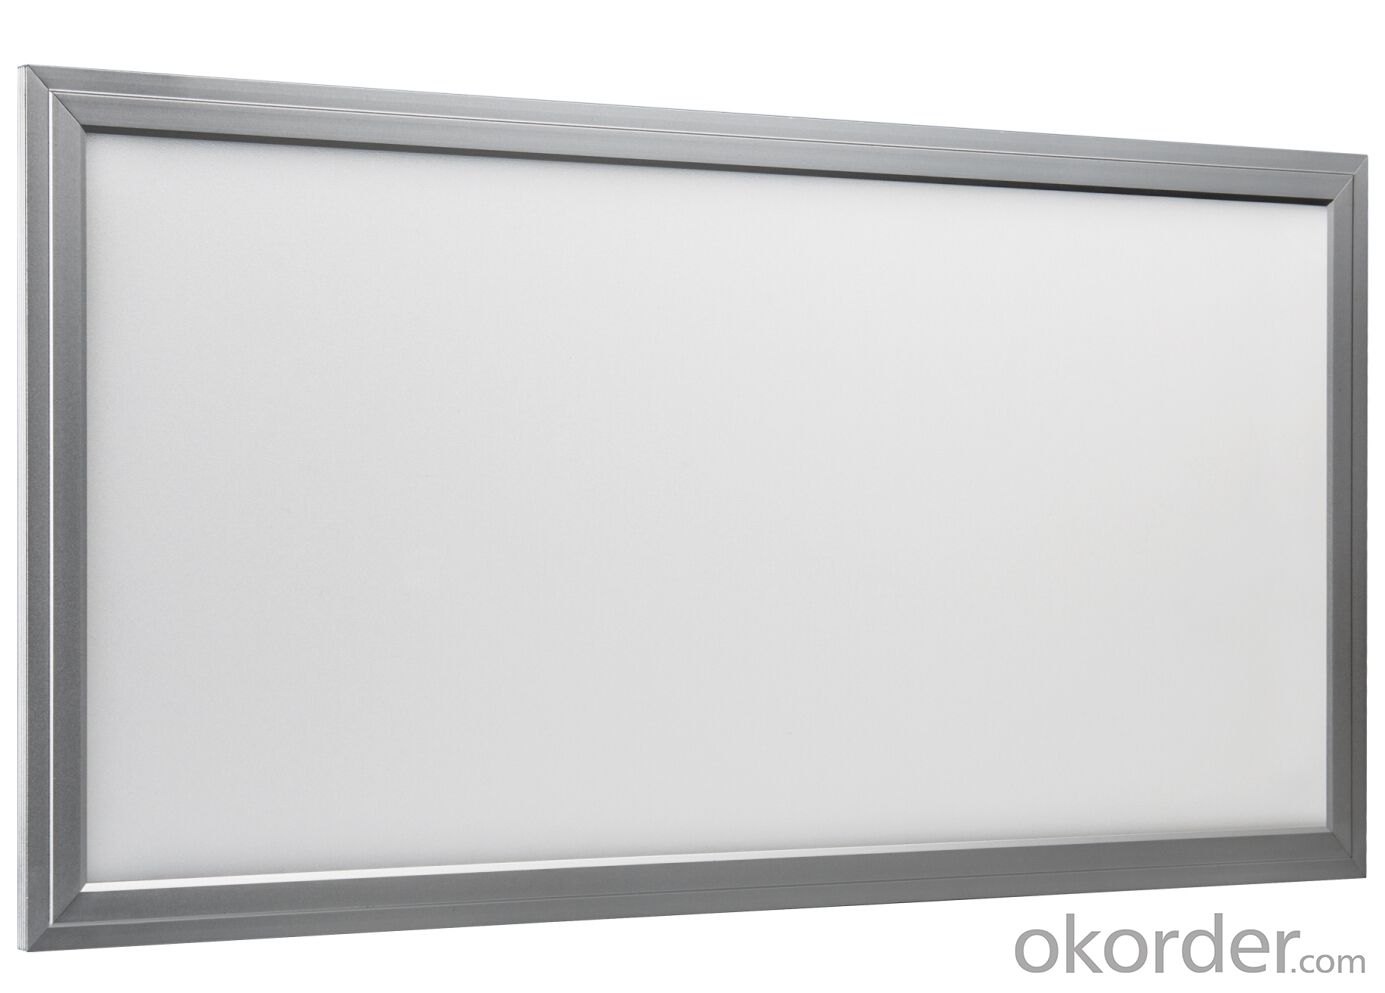 FLAT PANEL LED LIGHT-72W - SMD2835 LED-7200LM- 600MM*1200MM